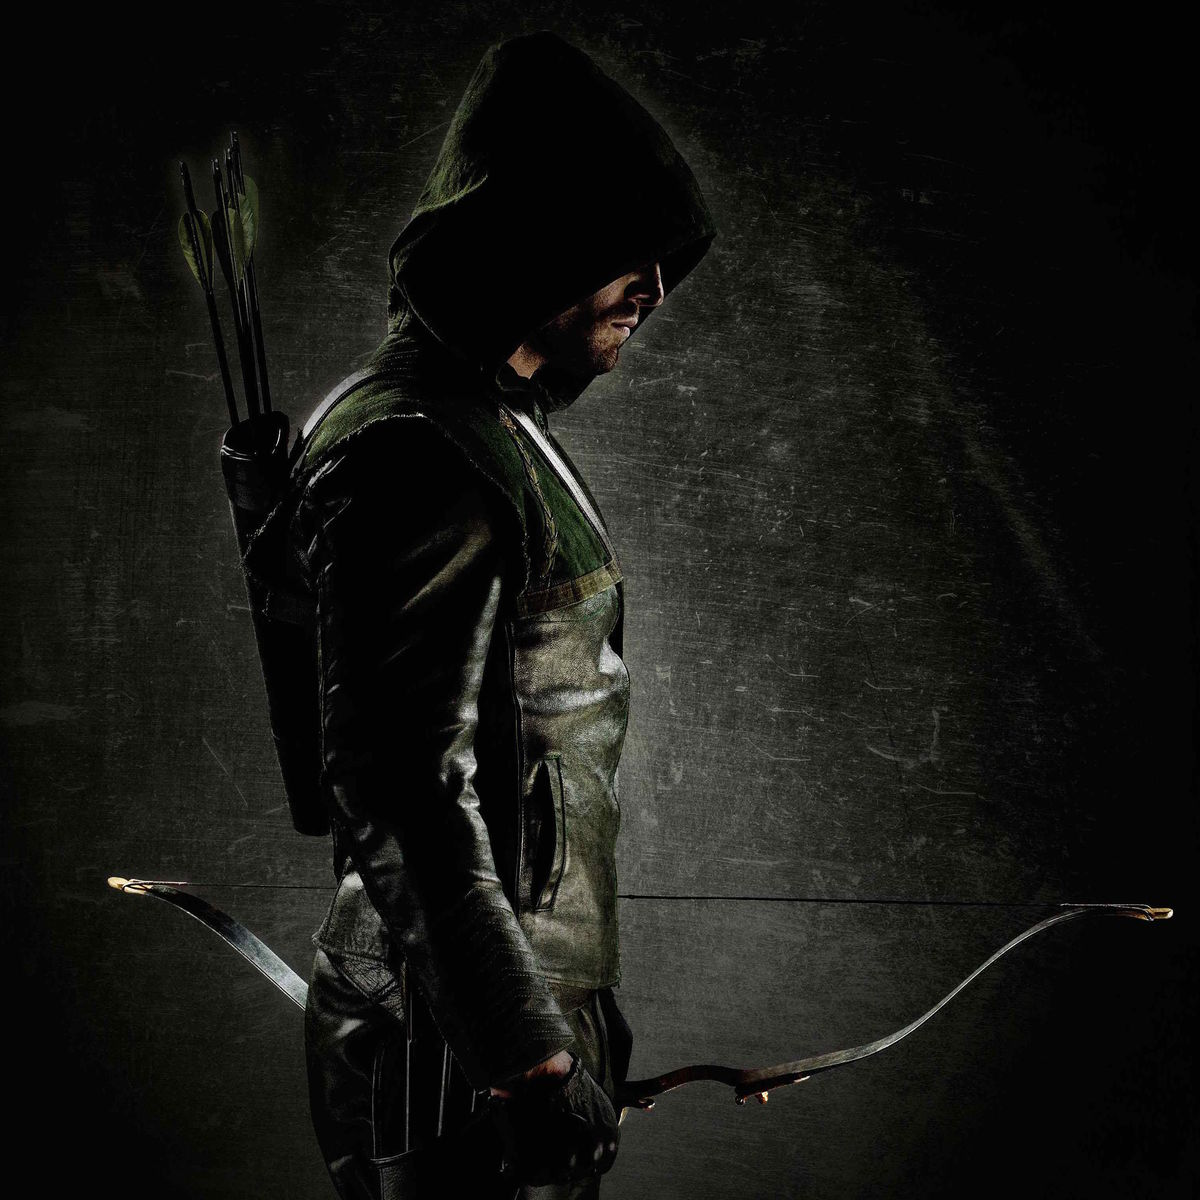 arrow-season-4-episode-2-introduces-a-new-villain-but-who-is-rick-pinzolo-arrow-seaso-667852.jpg